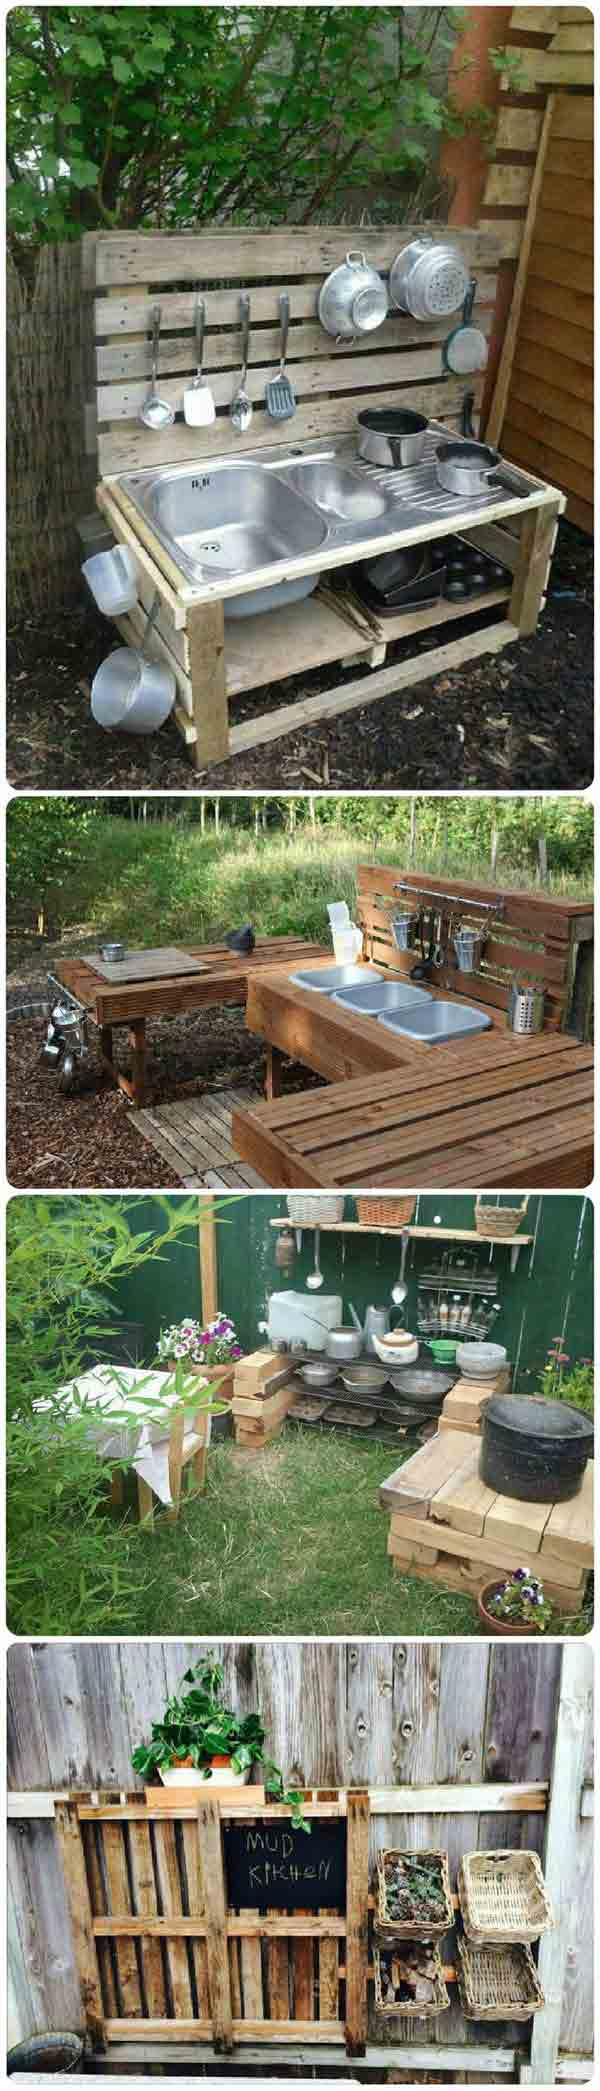 25 playful diy backyard projects to surprise your kids amazing diy backyard projects kid woohome 25 solutioingenieria Choice Image